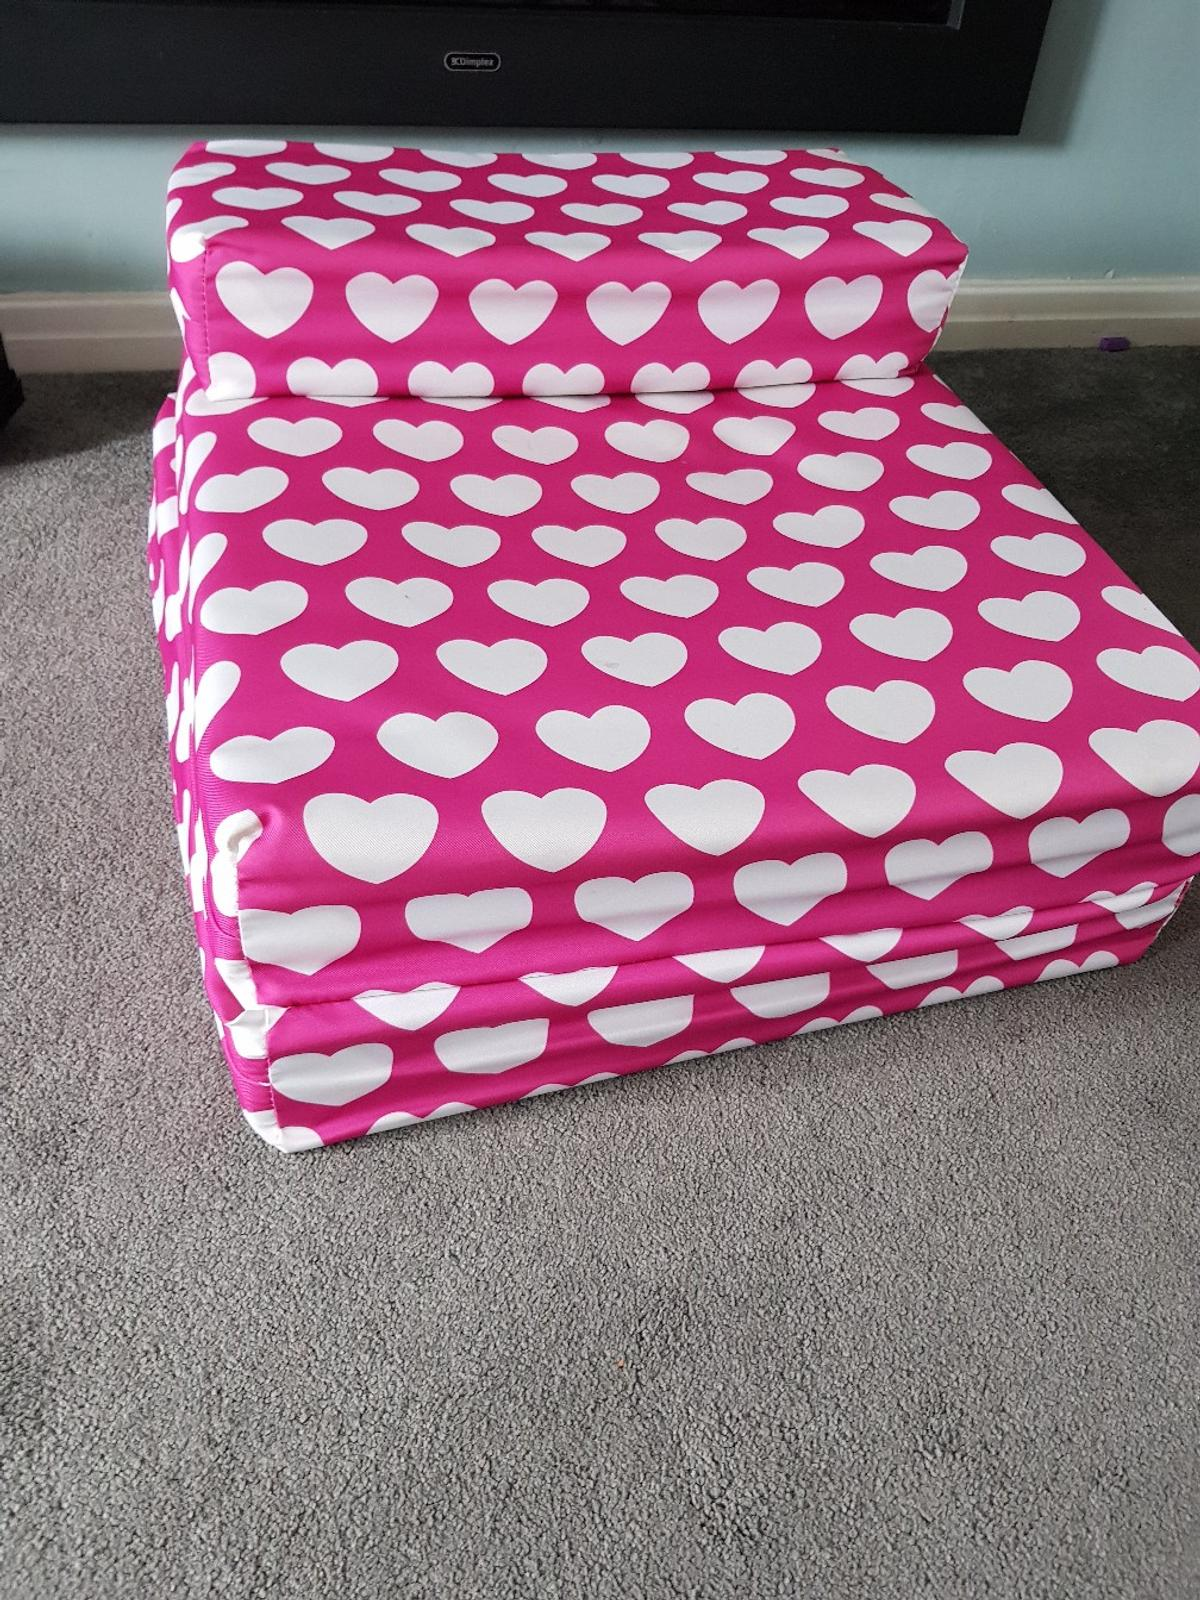 Single Foldable Mattress In Wf3 Leeds For 20 00 For Sale Shpock